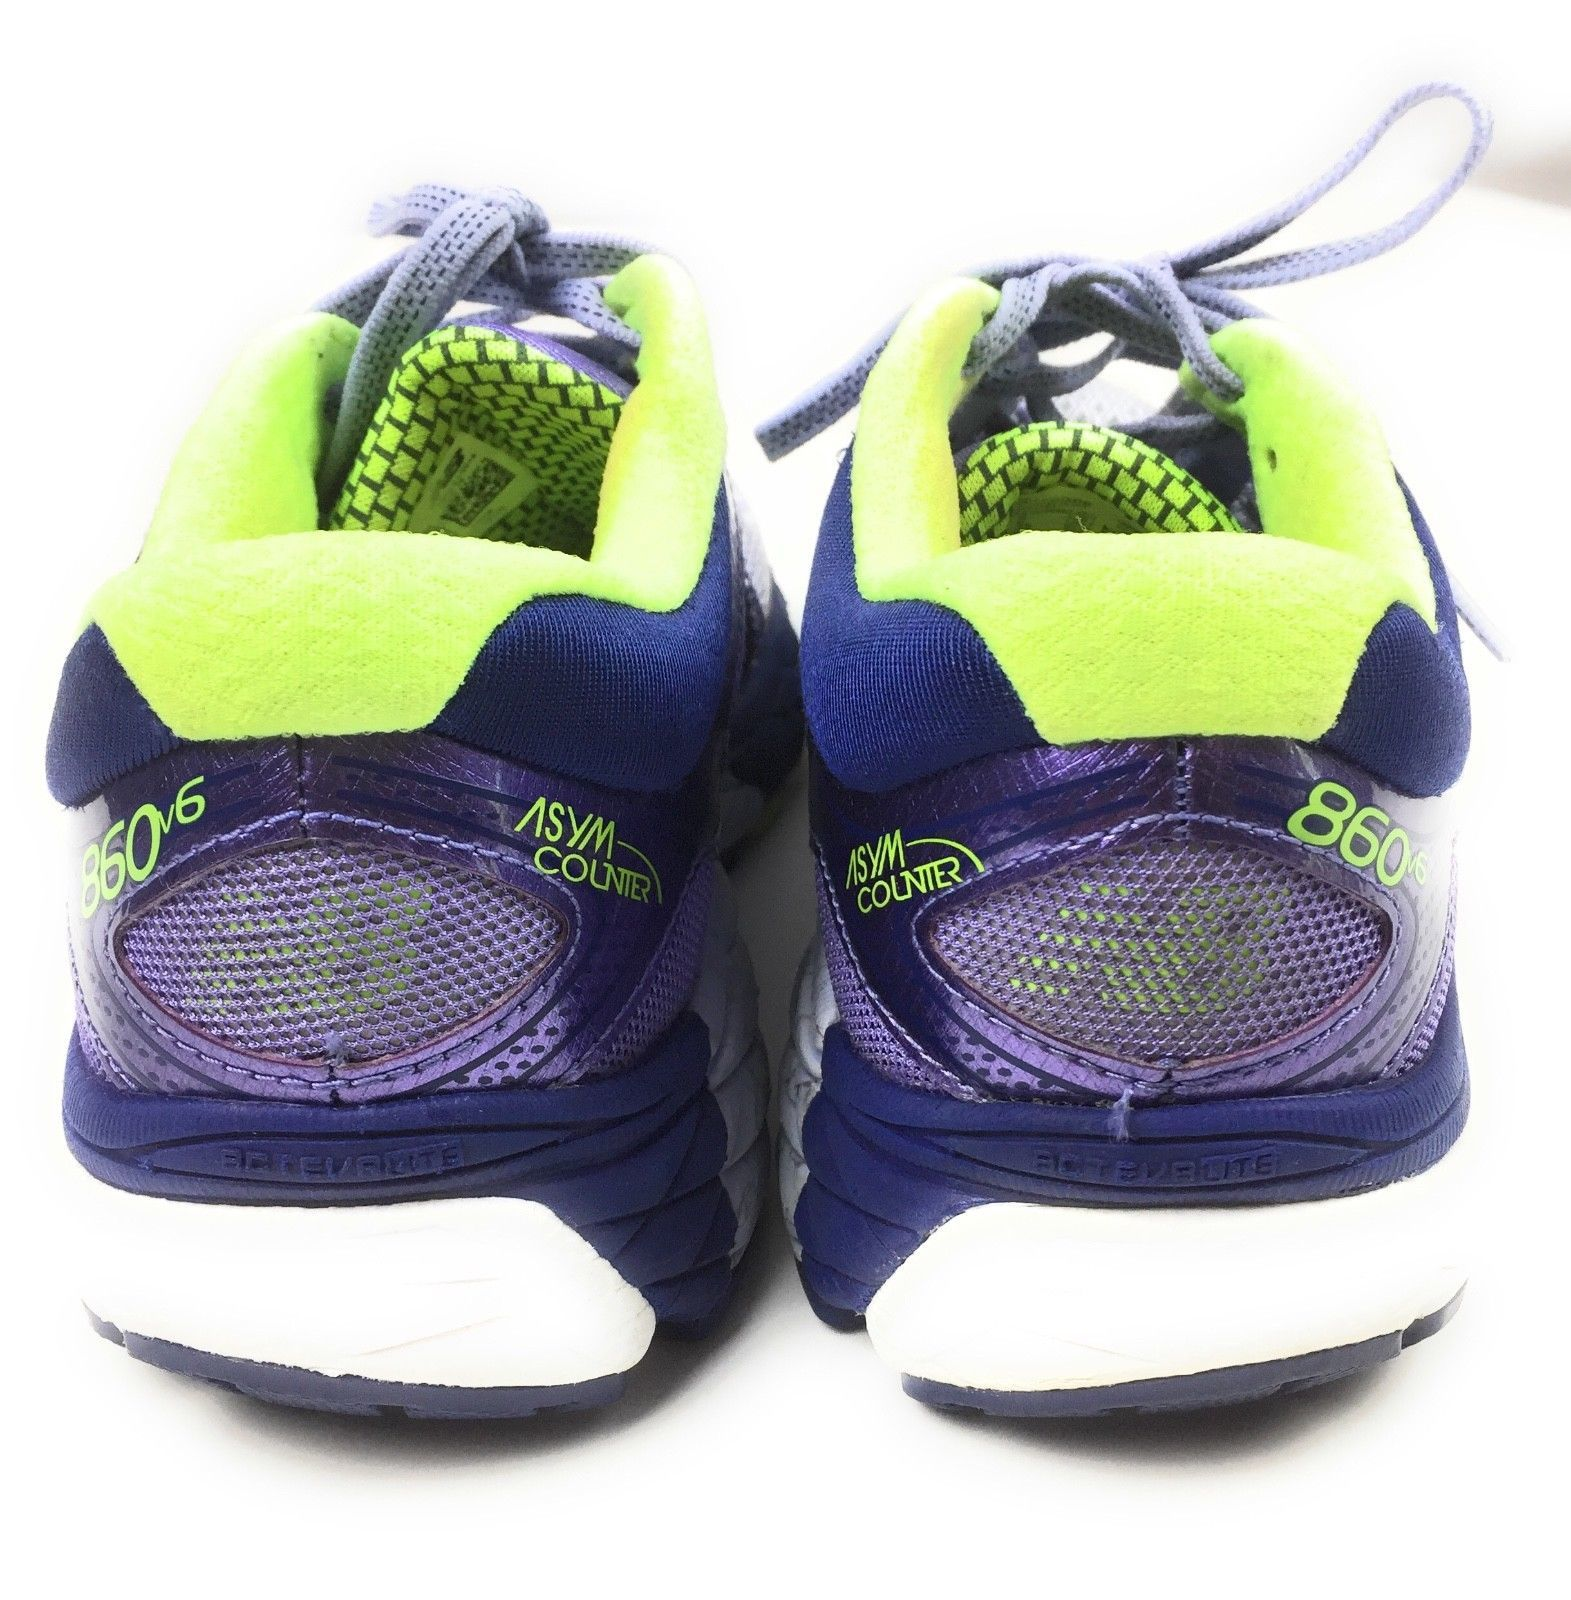 New Balance 860v6 Athletic Running Shoes W860GP8 Purple Green Women's Size 8 US image 5